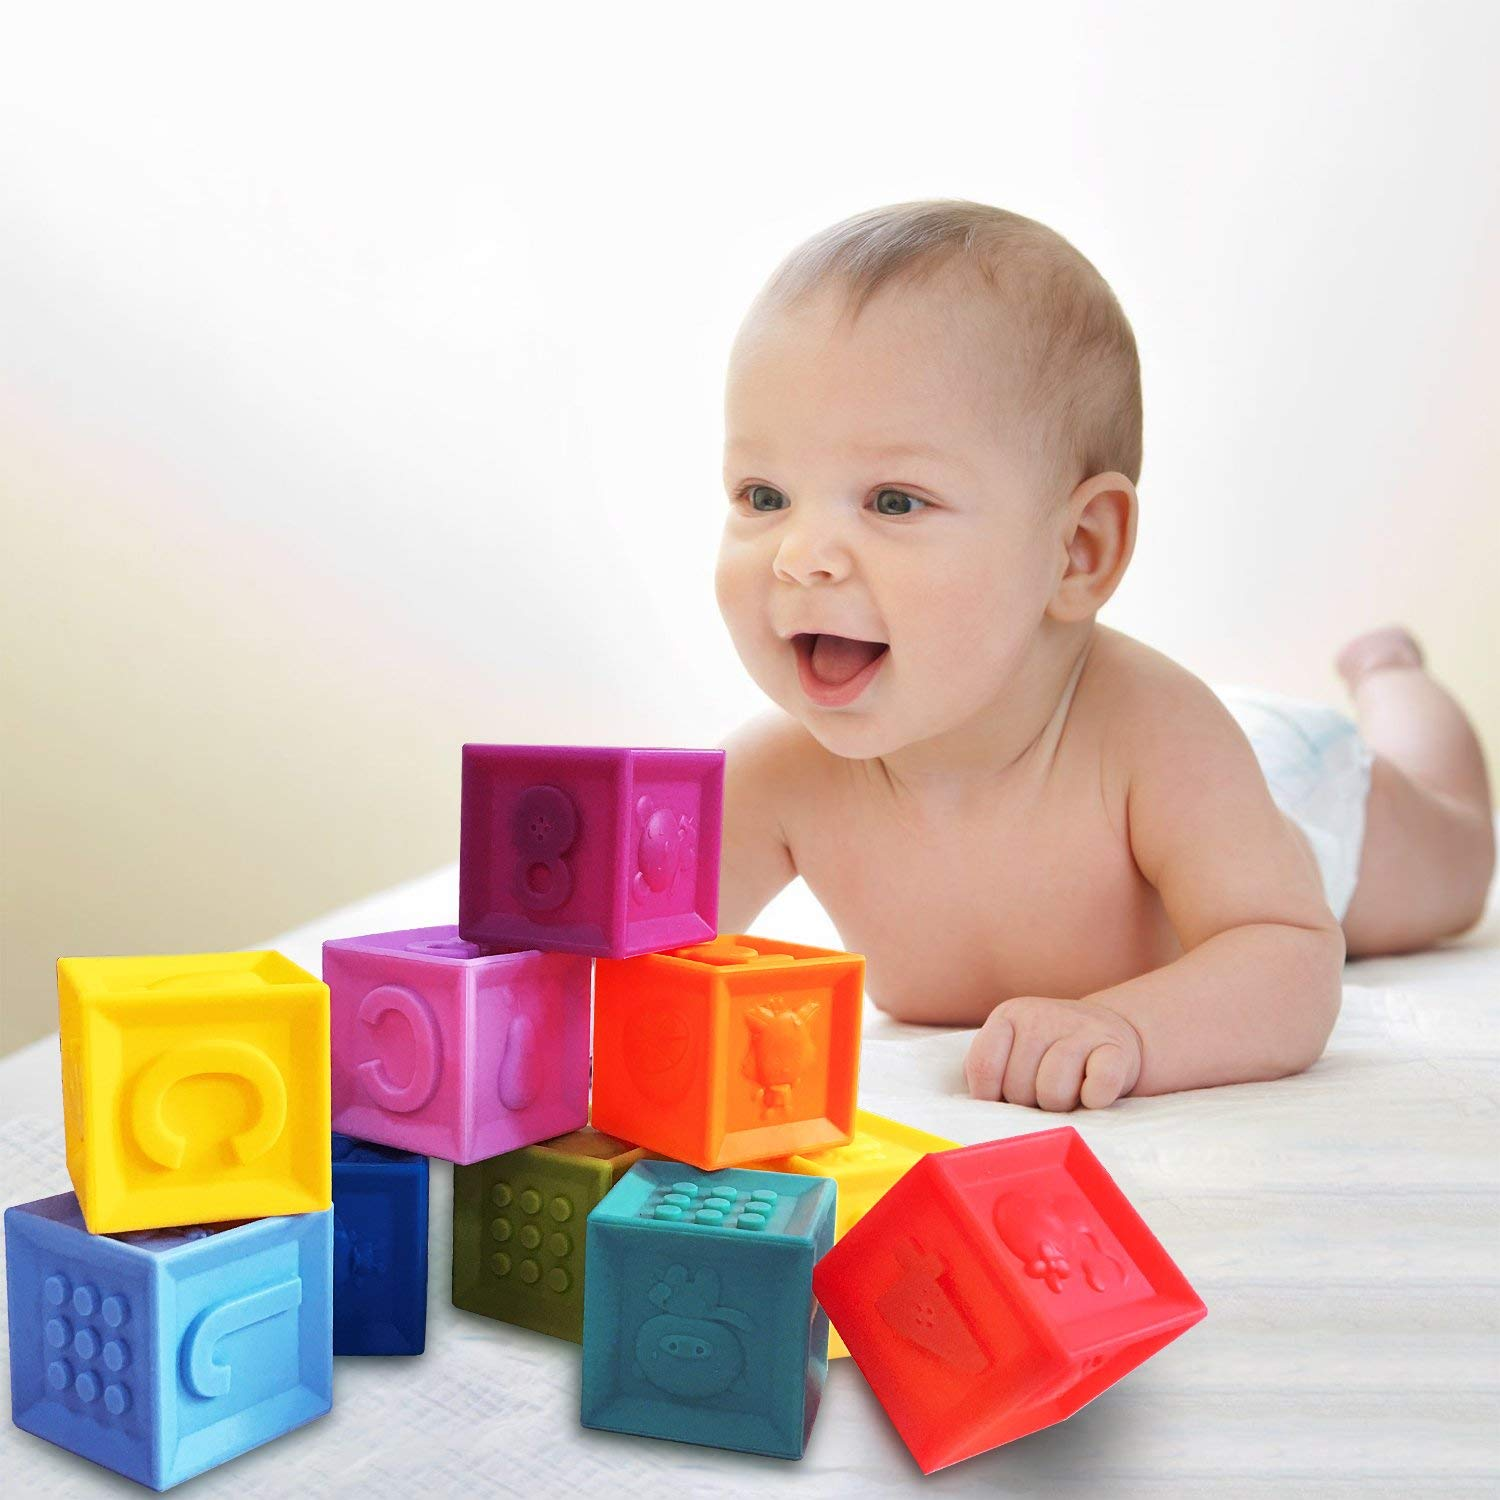 arVin Soft Block, Baby BPA Teething Educational Bath Toys for Kids, Food Grade, Squeeze Blocks for Toddlers with Sound Numbers Letters & Images (Set of 10, Cube size: 1.6 in)